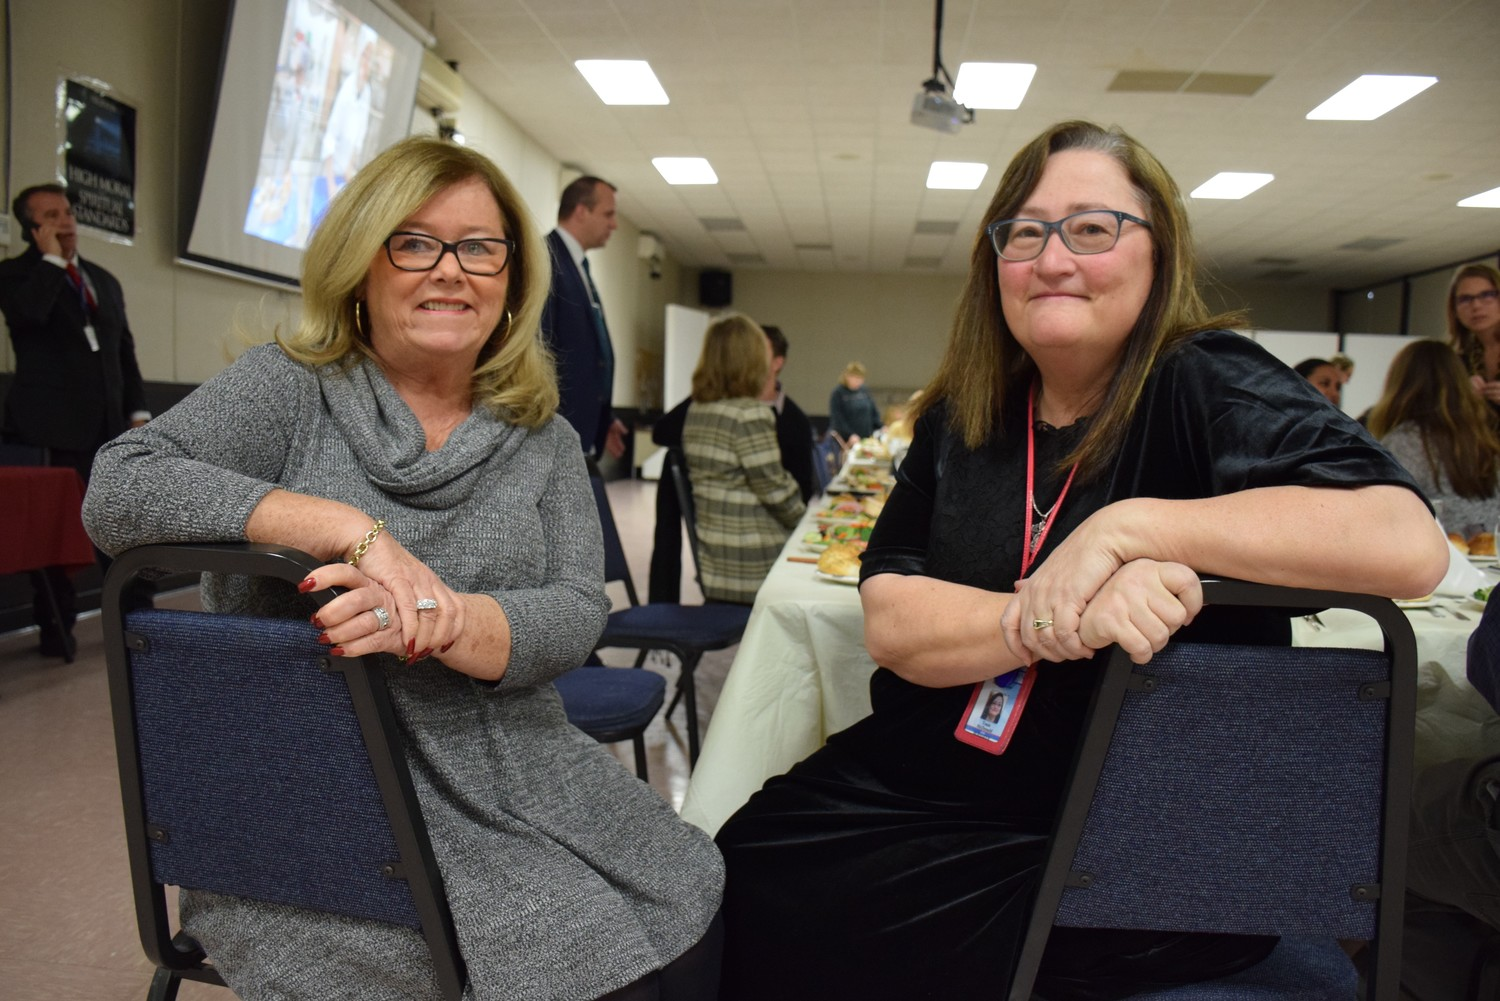 Levittown Public Schools Board of Education President Peggy Marenghi, left, and Superintendent of Schools Dr. Tonie McDonald, right, were among those who discussed the 2018-19 budget on Feb. 28.